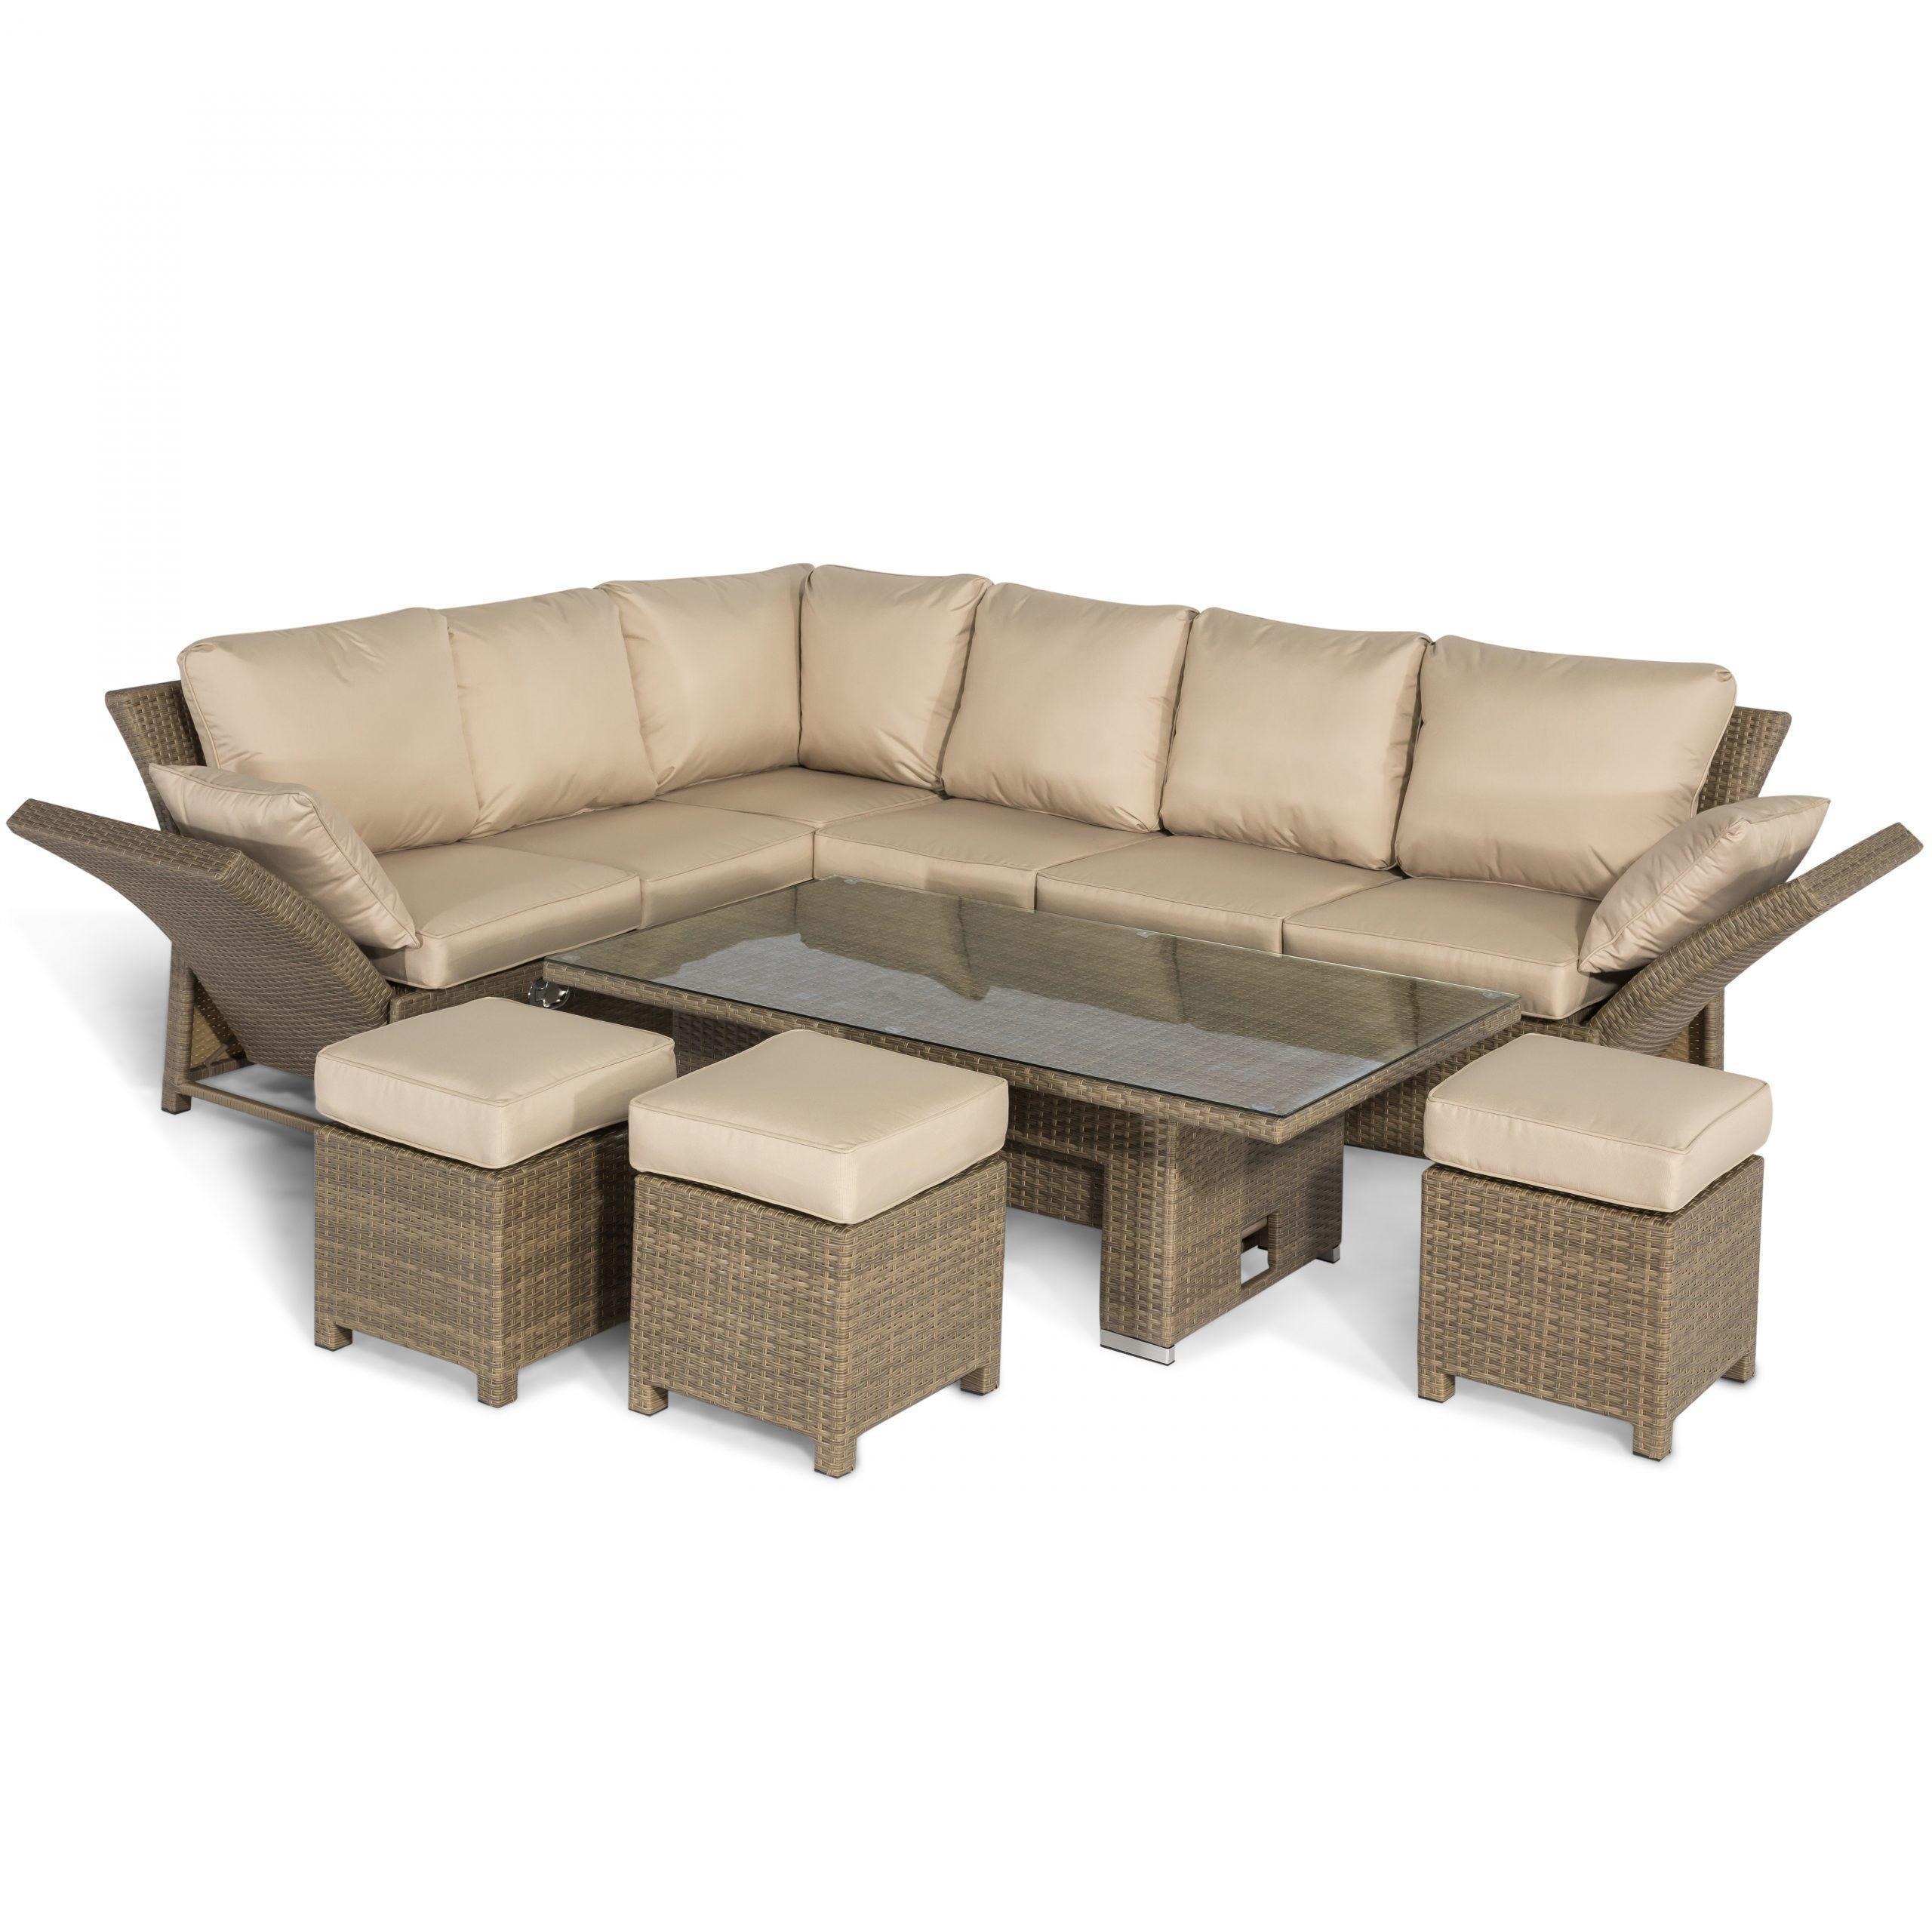 garden corner sofa dining set rising dining table reclining arms light polyweave